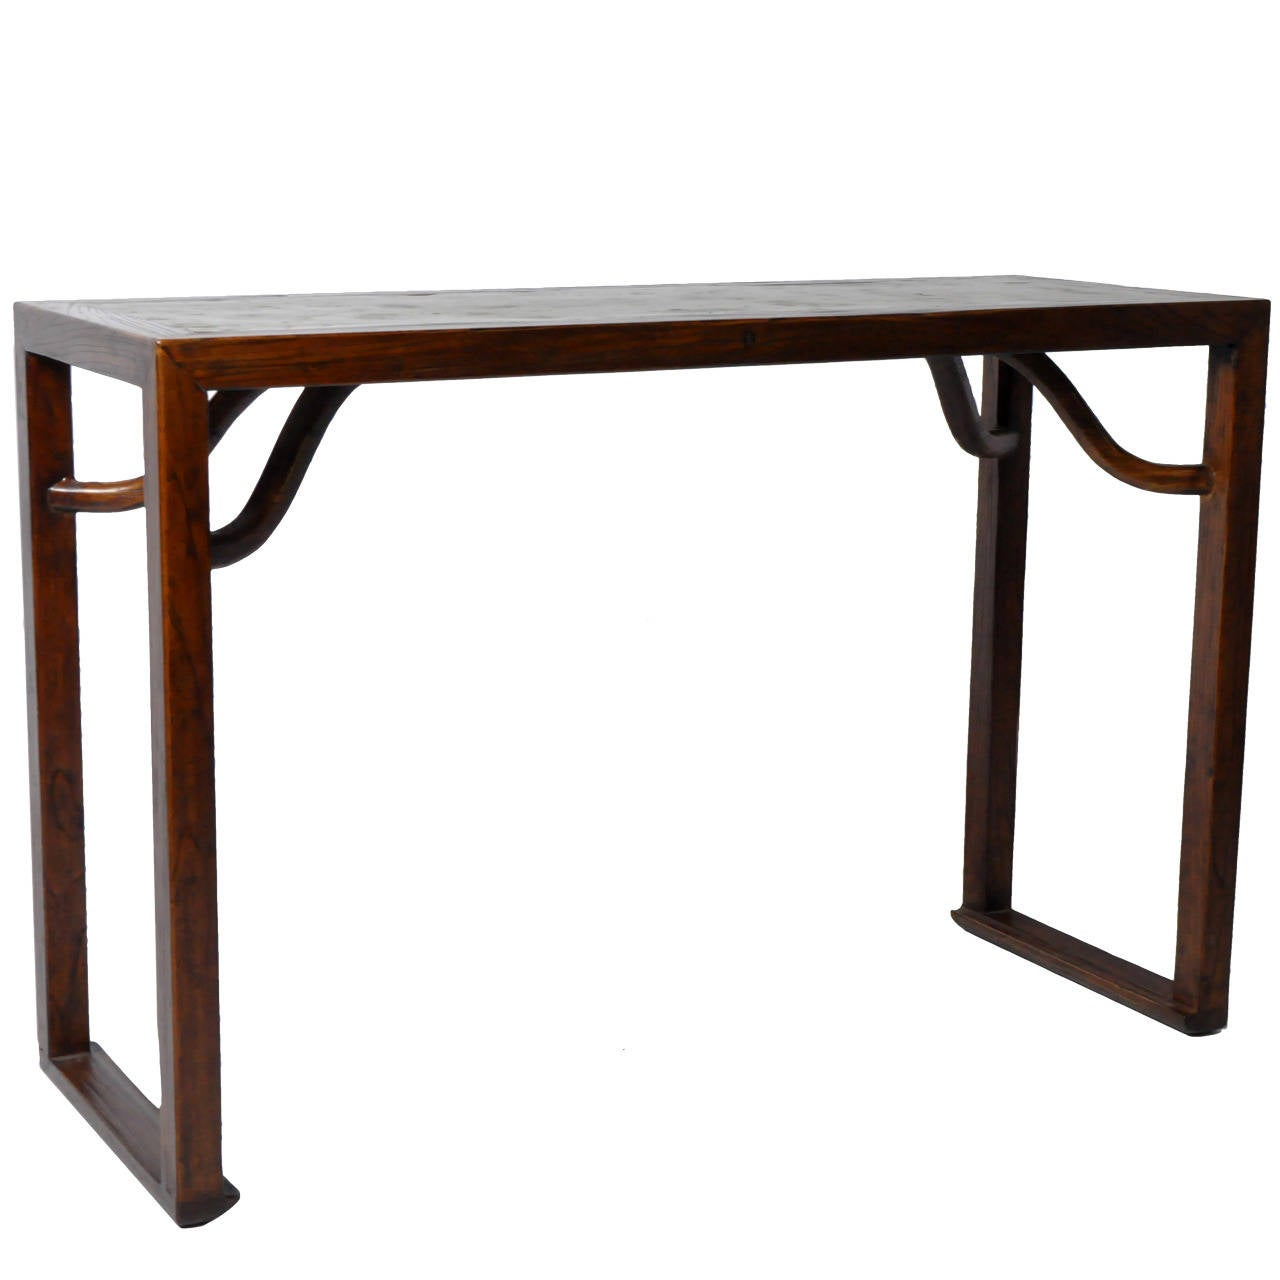 Stone Console Table: 19th Century Console Table With Stone Top At 1stdibs